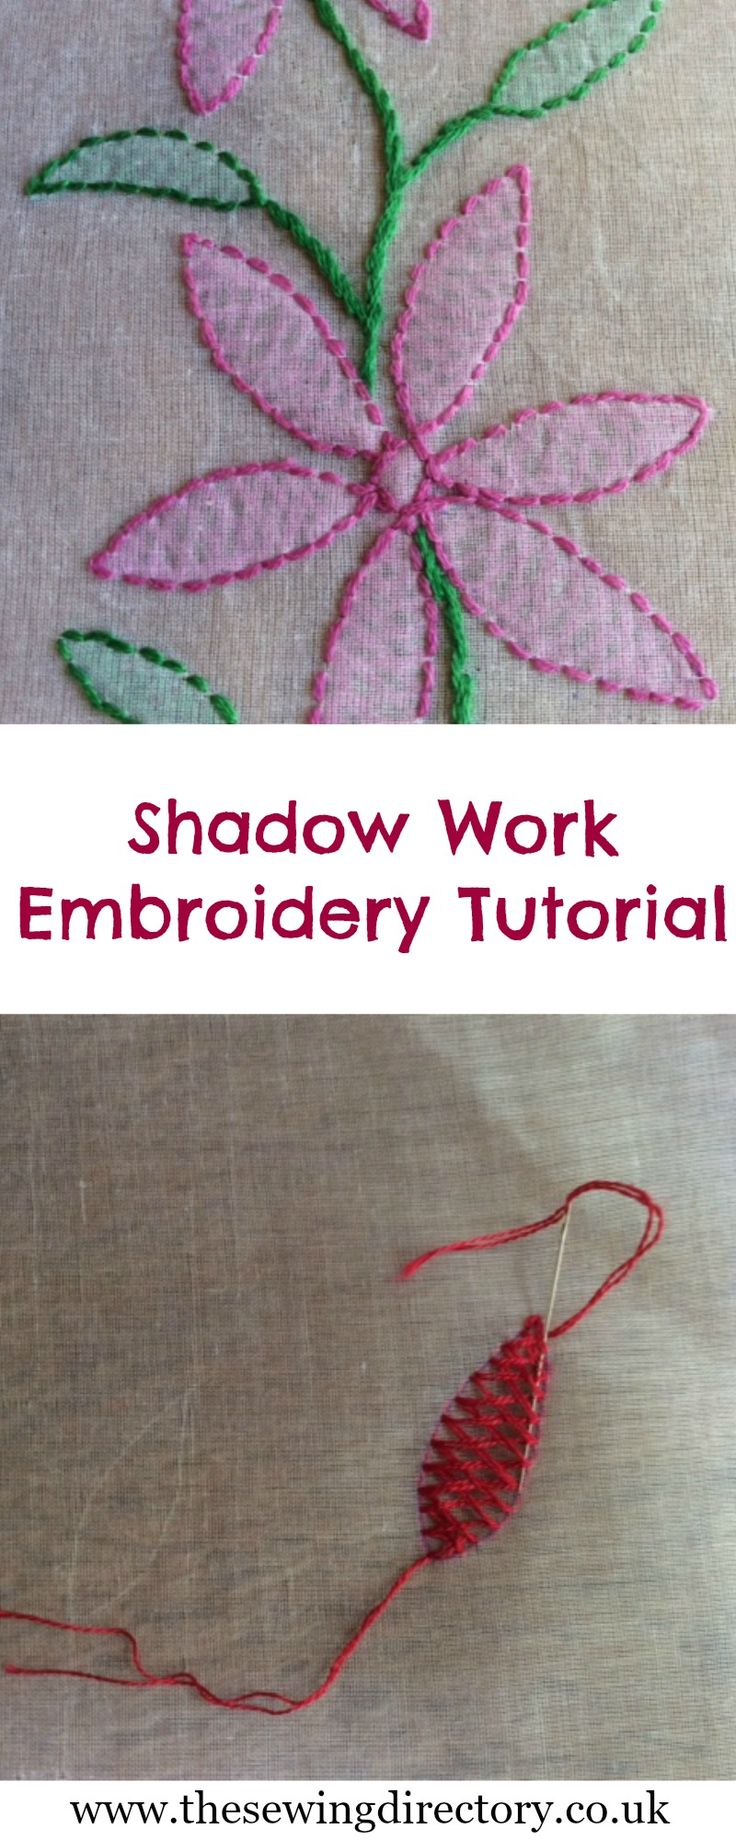 Shadow Work Embroidery Tutorial - part of our 10-part series on hand embroidery